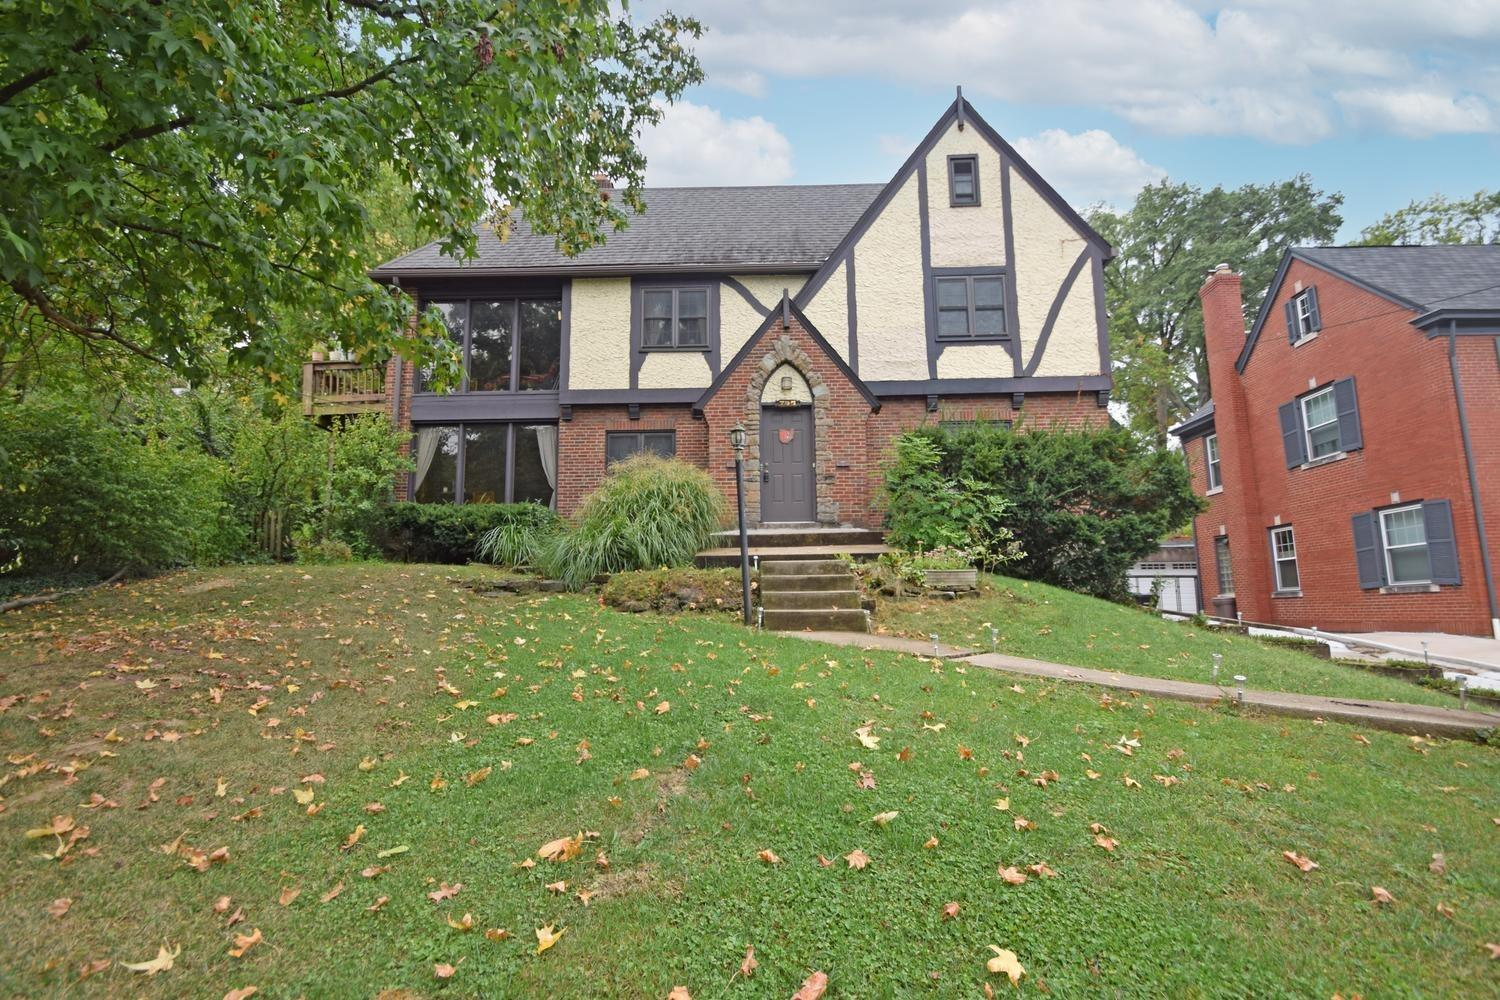 Photo 2 for 795 Ludlow Avenue Clifton, OH 45220